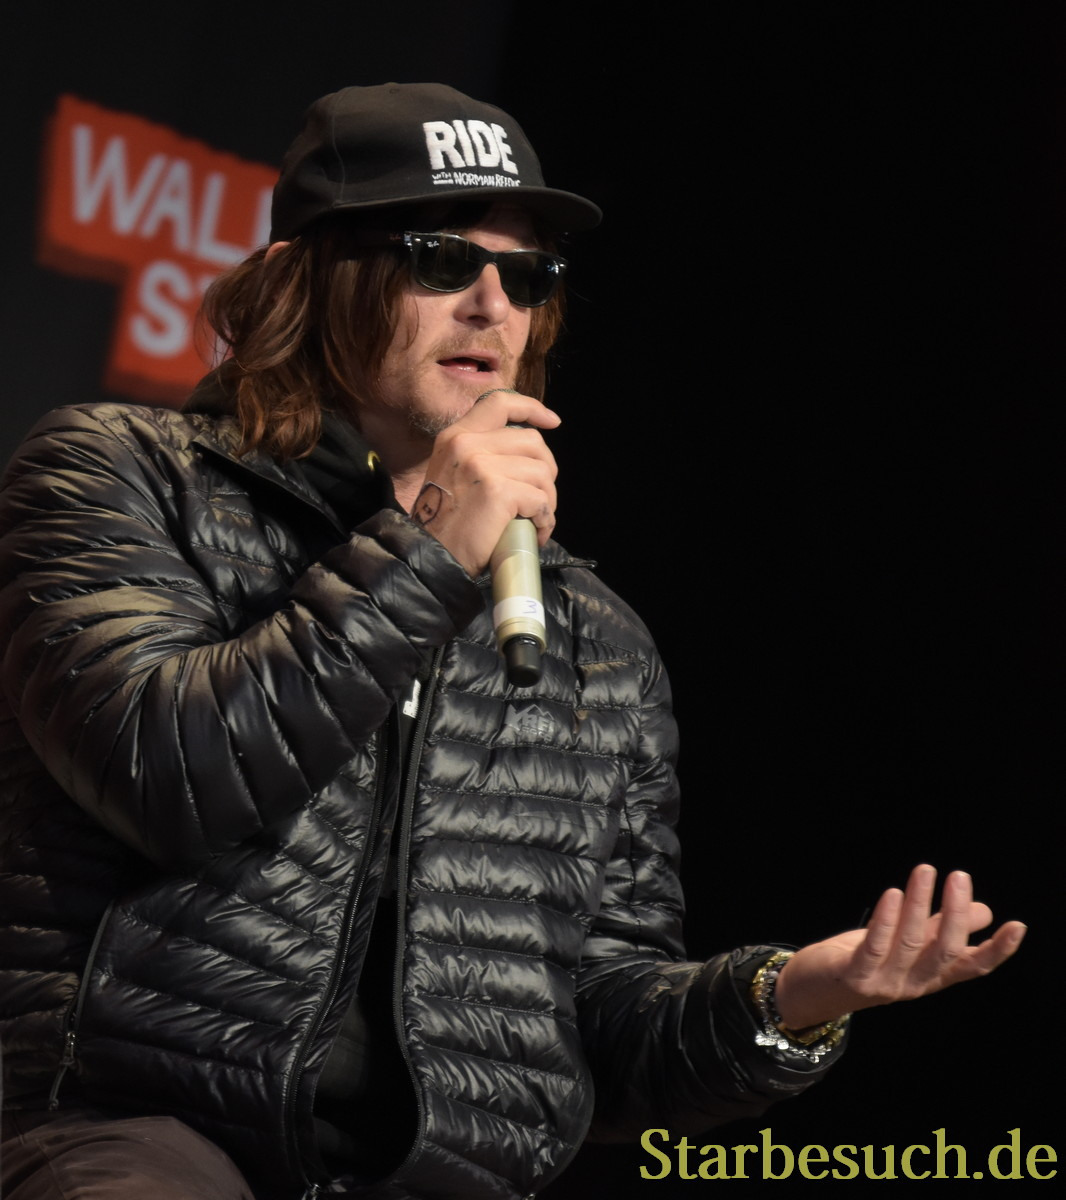 MANNHEIM, GERMANY - MARCH 18: Actor Norman Reedus (The Walking Dead), panel, at Walker Stalker Germany convention. (Photo by Markus Wissmann)